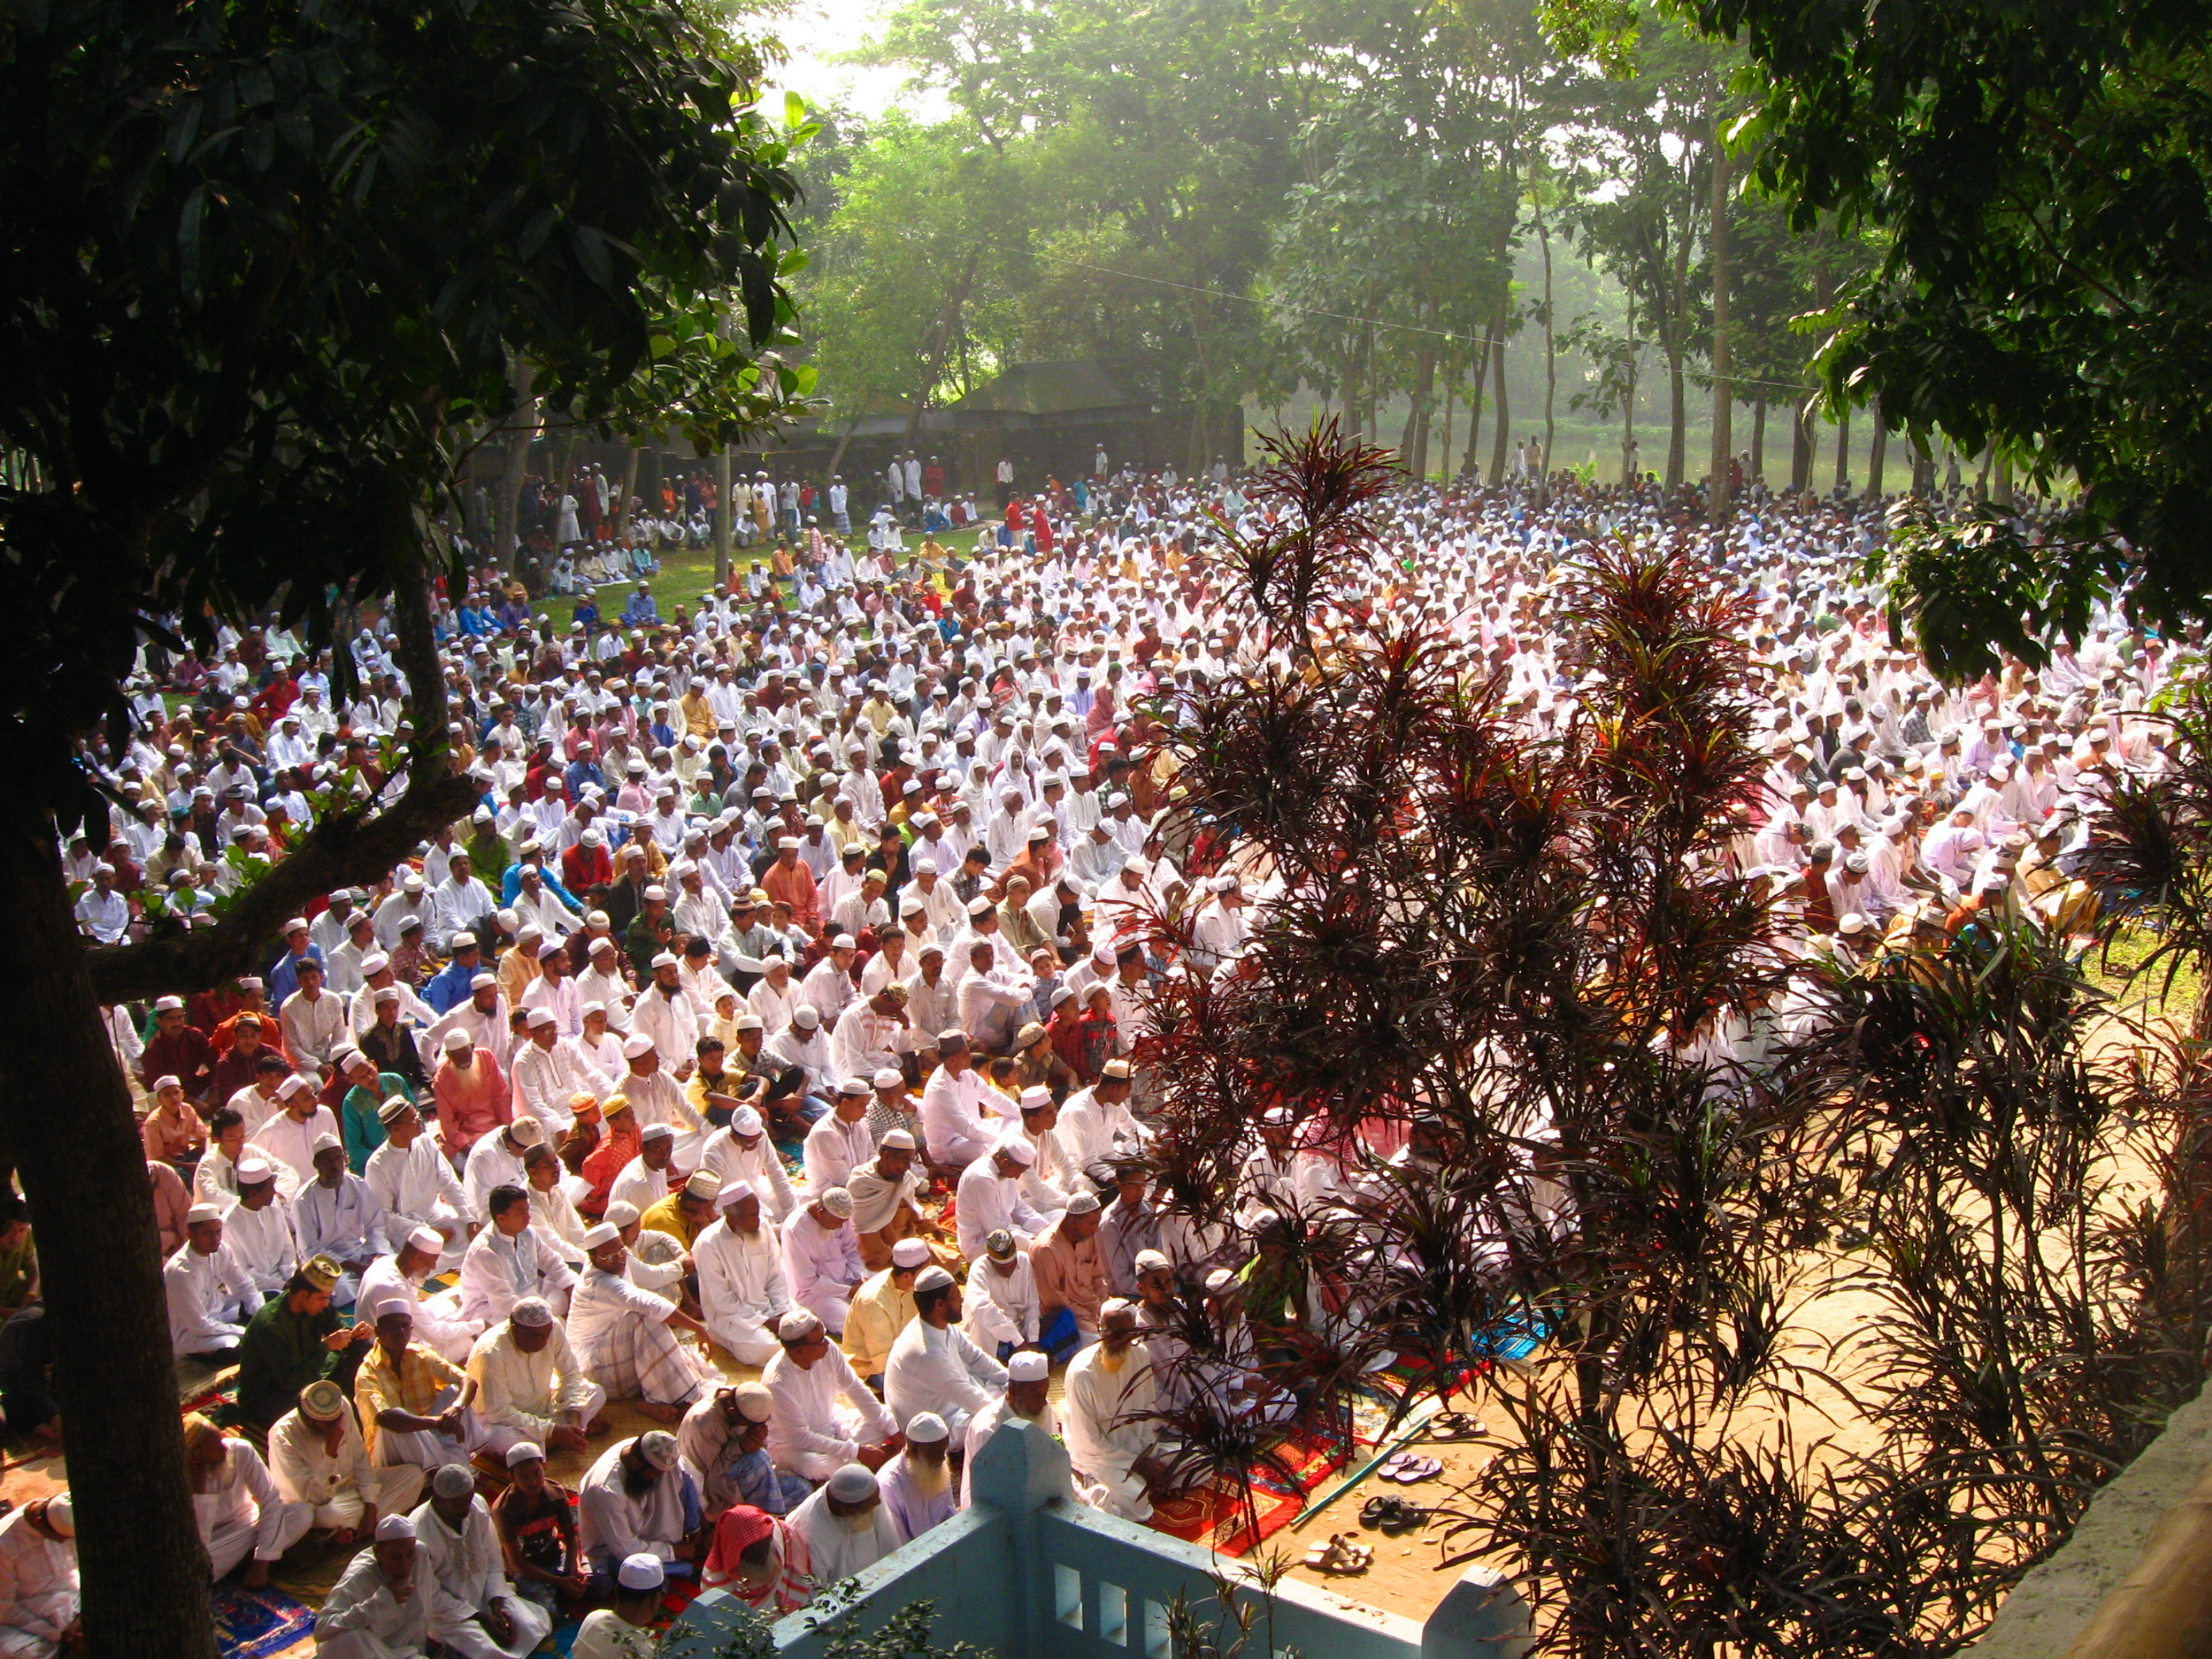 Eid_Prayers_at_Barashalghar,_Debidwar,_Comilla.jpg (2592×1944)